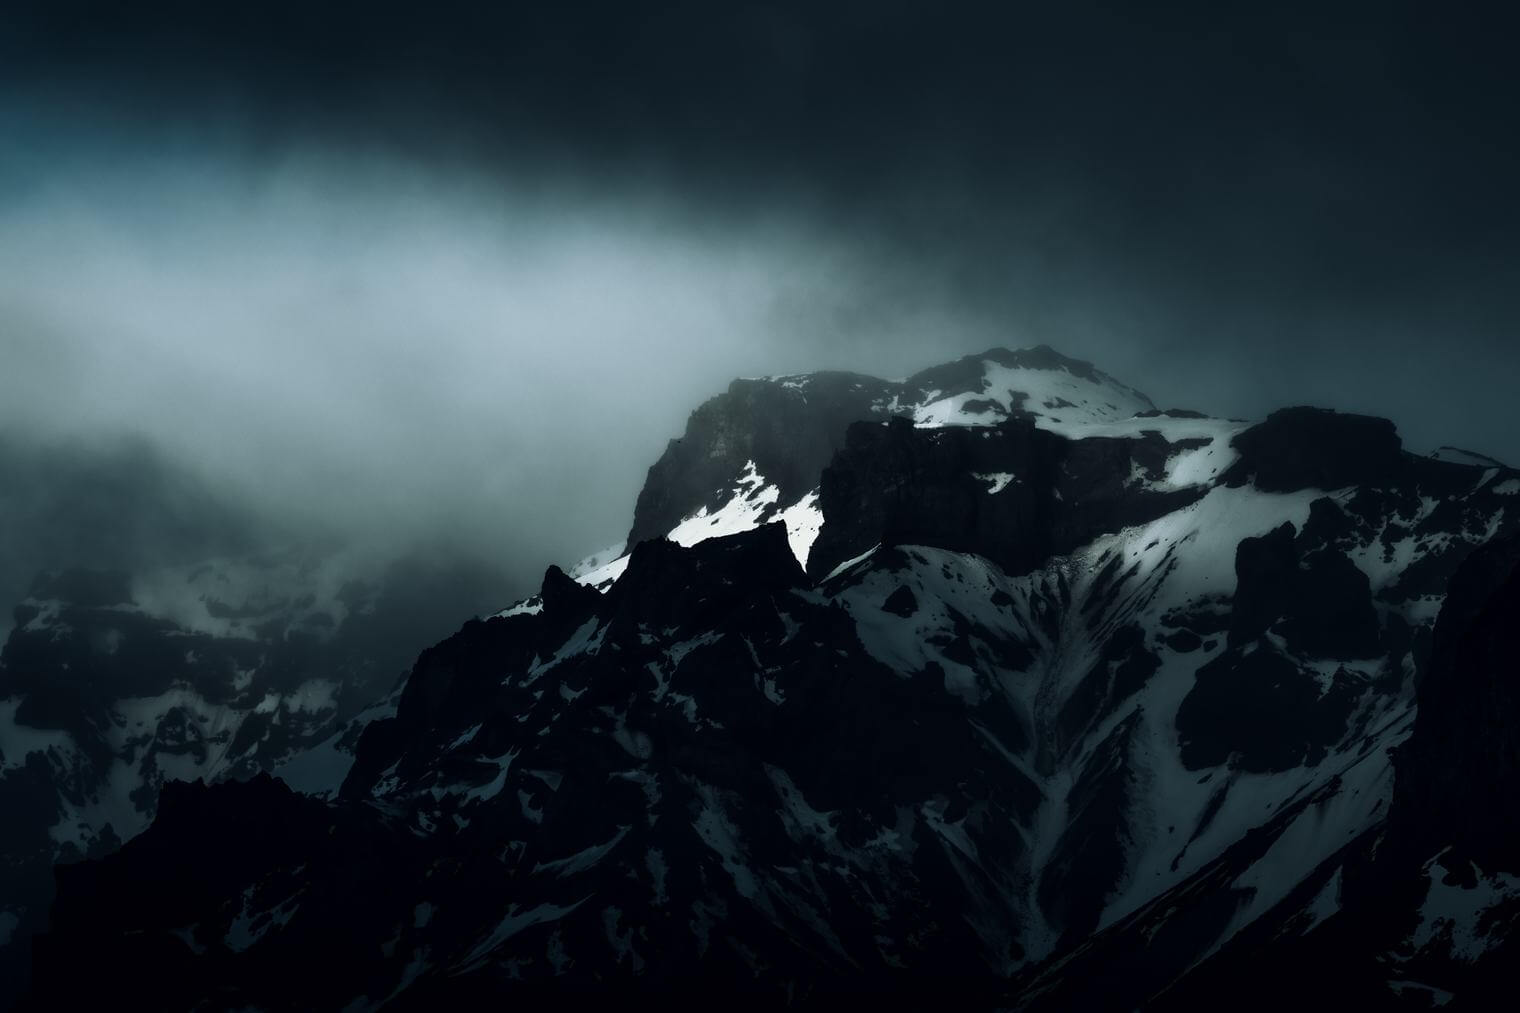 Dark and Dramatic Mountain Landscape